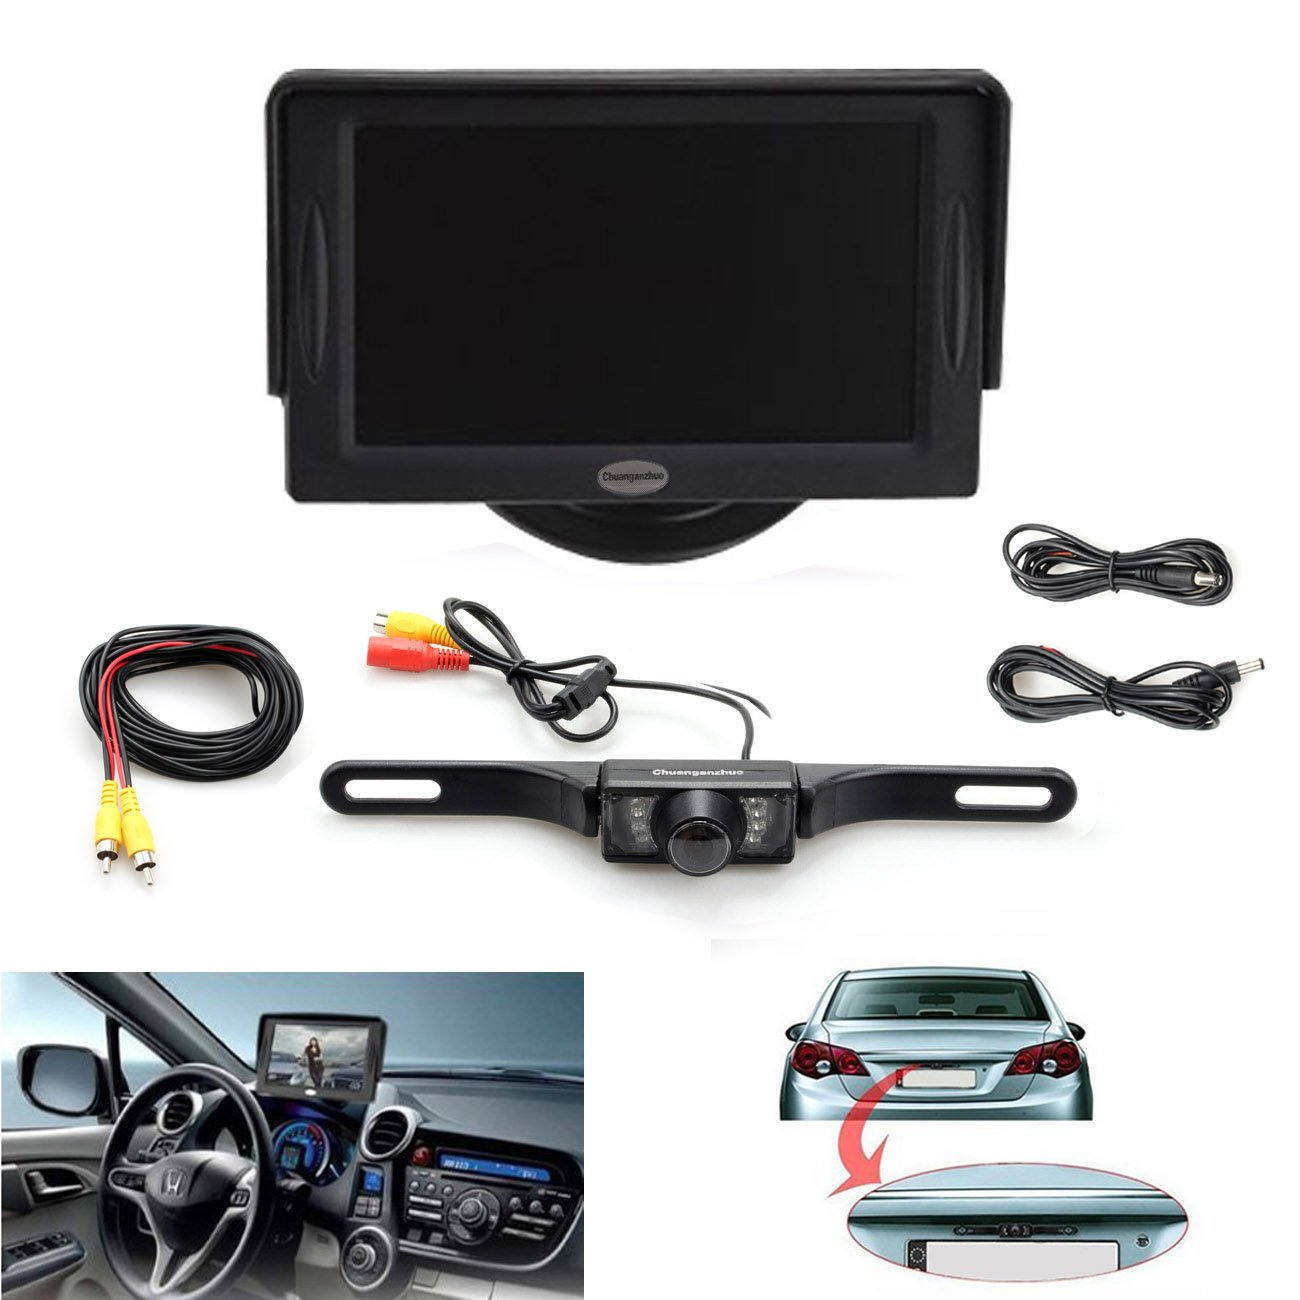 Backup Camera and Monitor Kit For Car,Universal Waterproof Rear-view License Plate Car Rear Backup Parking Camera + 4.3 TFT LCD Rear View Monitor Screen цепи противоскольжения pewag servo rsv 80